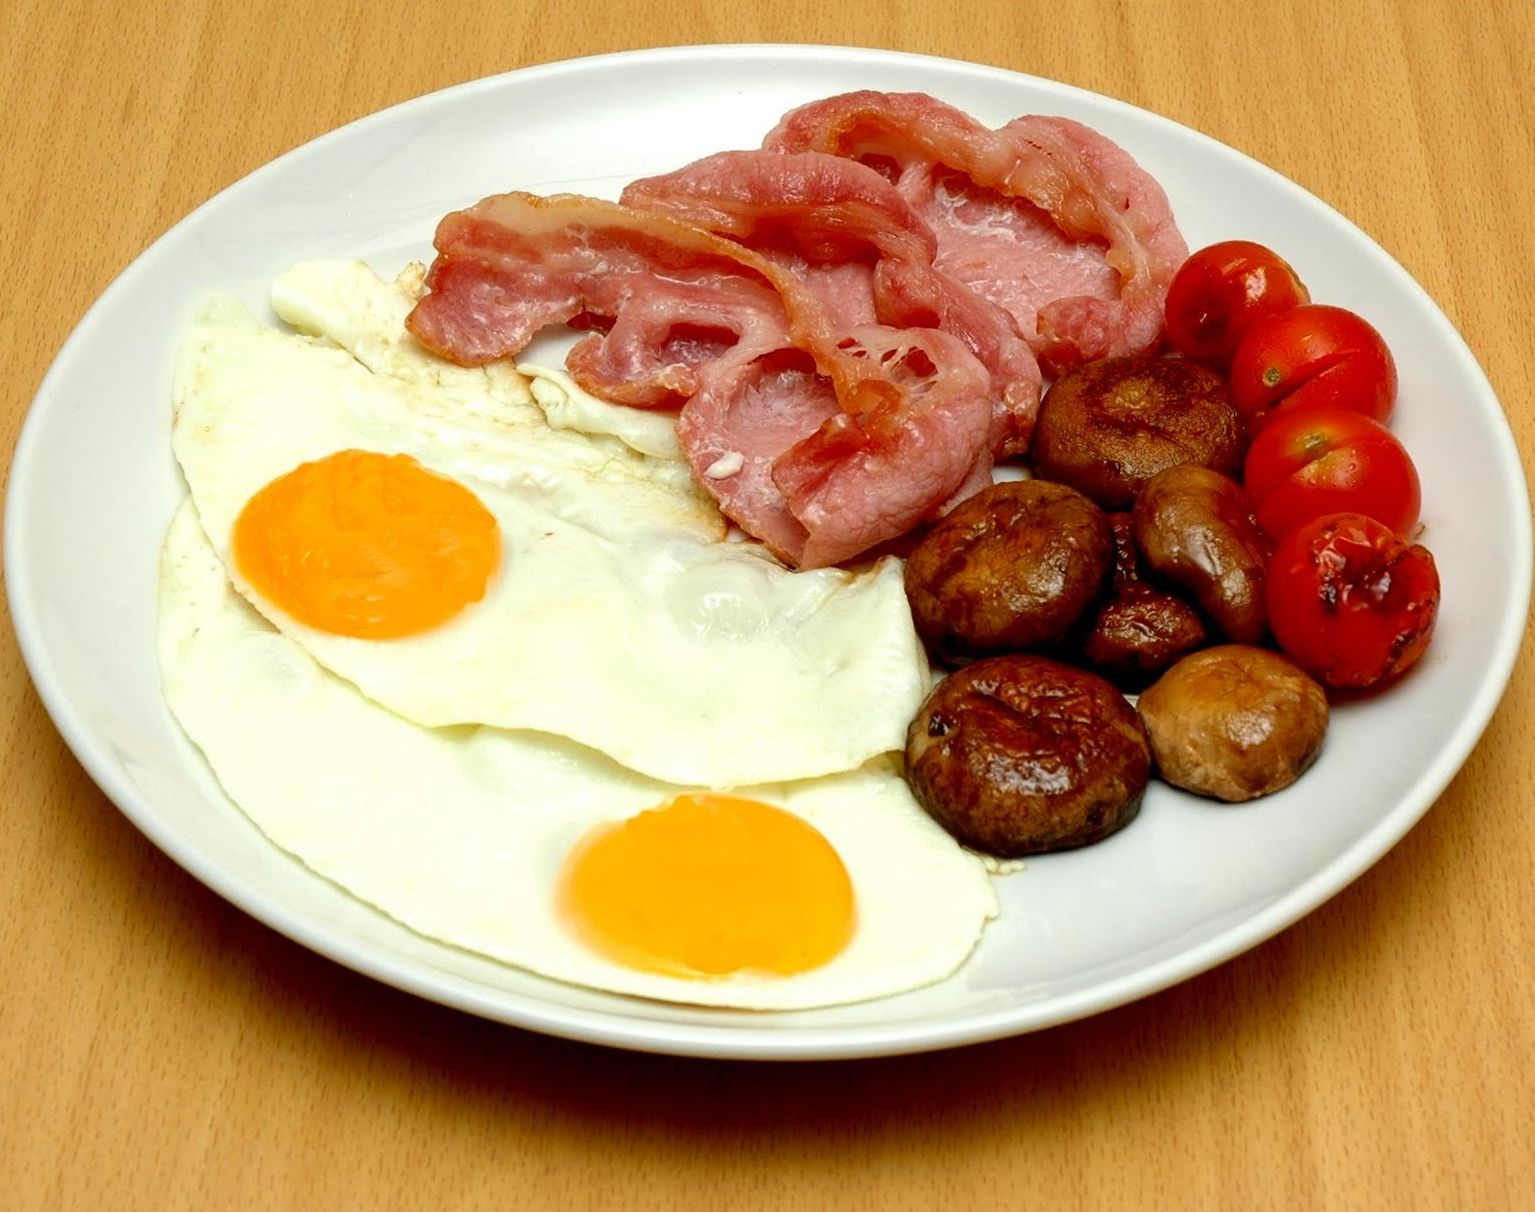 Low carb diet will i lose weight